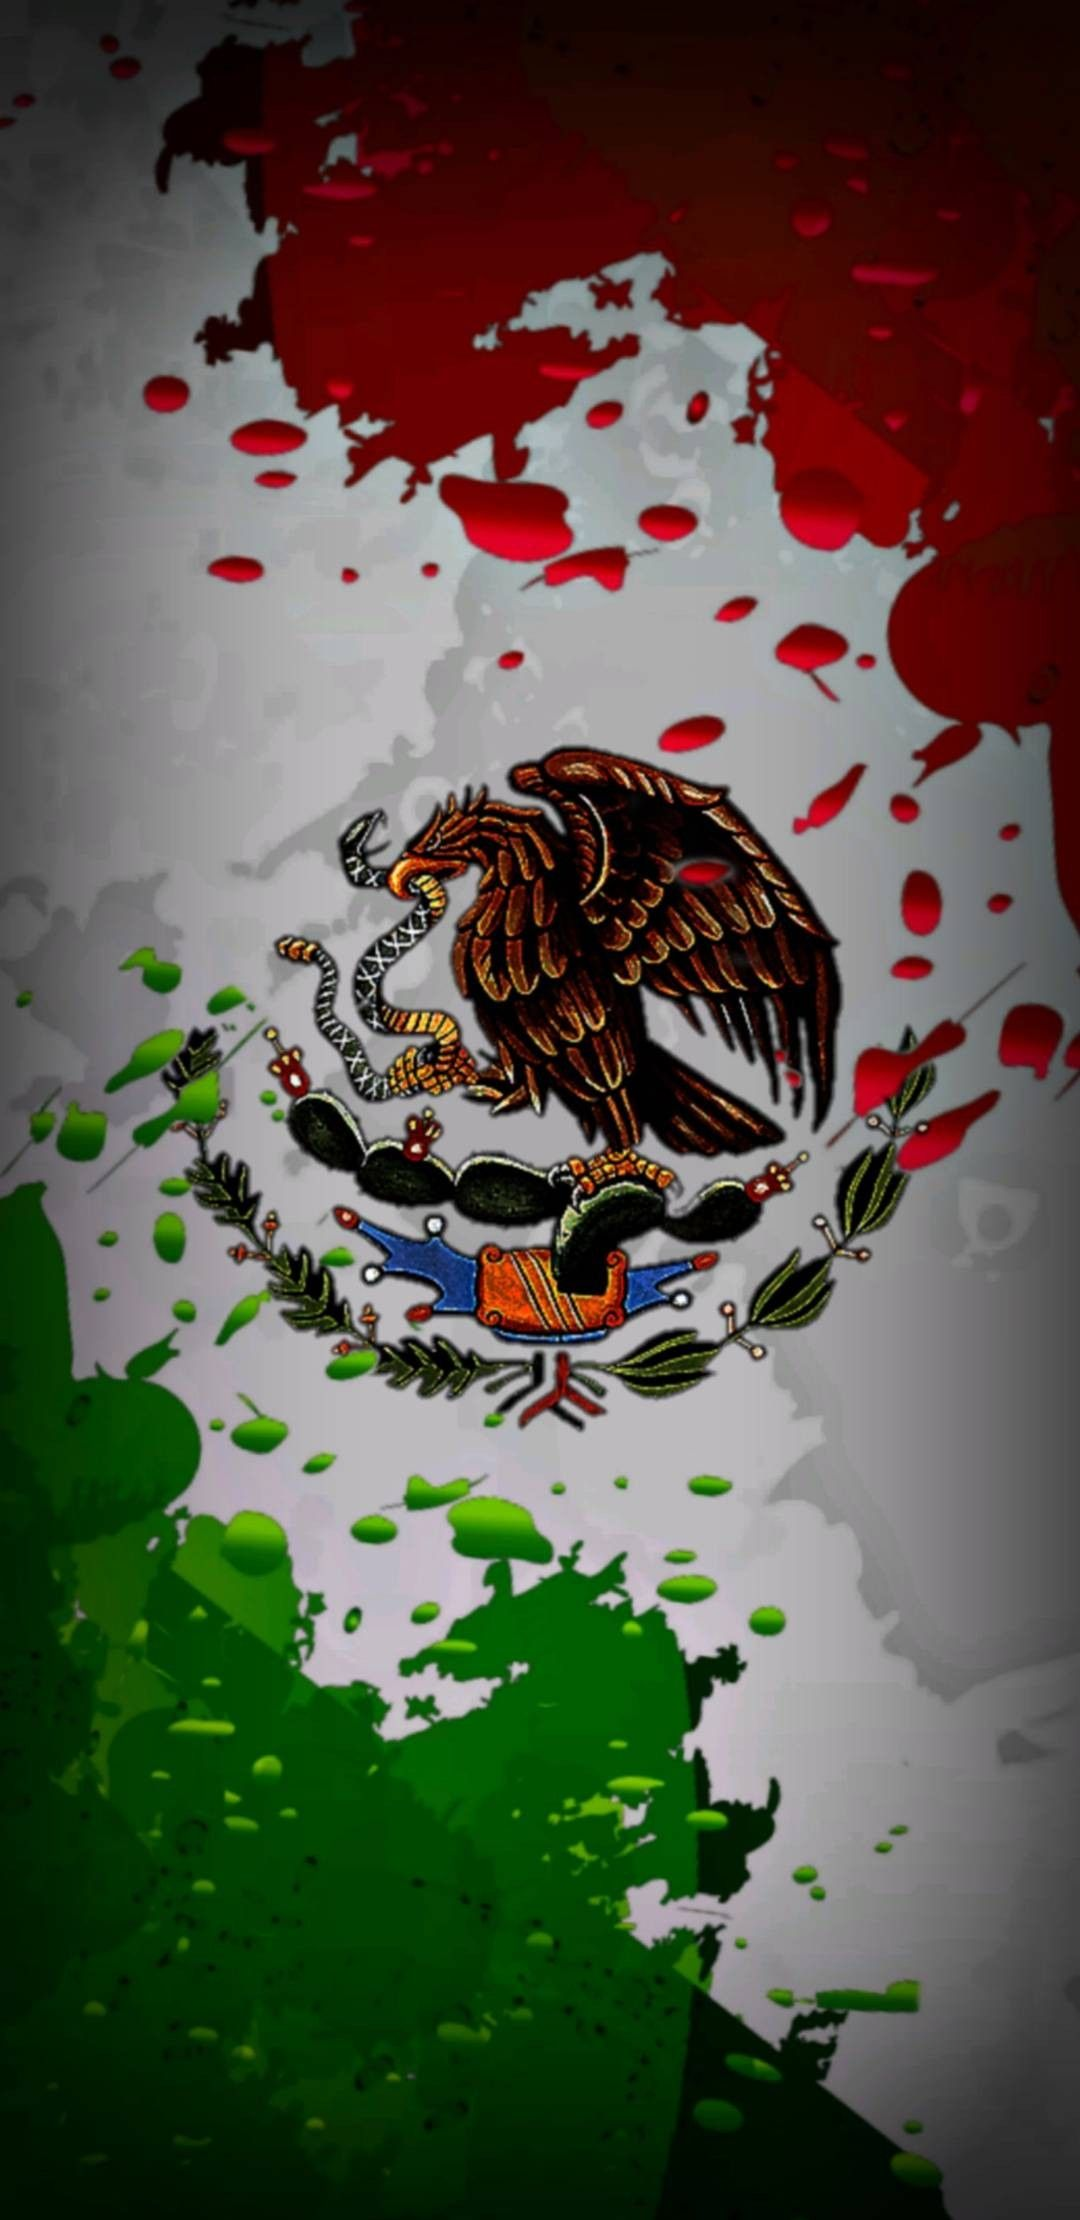 Pin By George Zarat Glez On Wall Mexico Wallpaper Mexican Art Mexican Culture Art